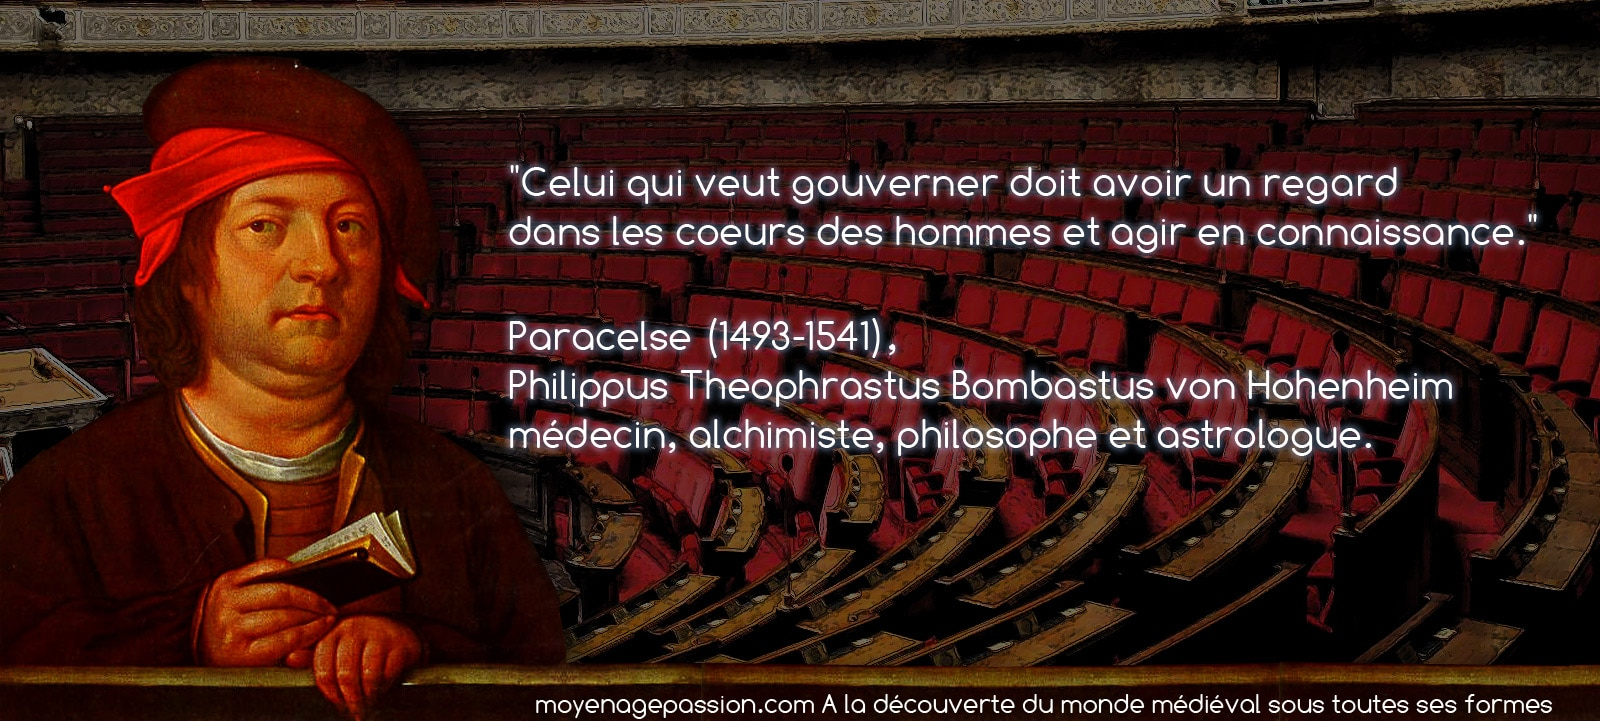 citation_medievale_paracelse_gouvernement_medecin_philosophe_astrologue_moyen-age